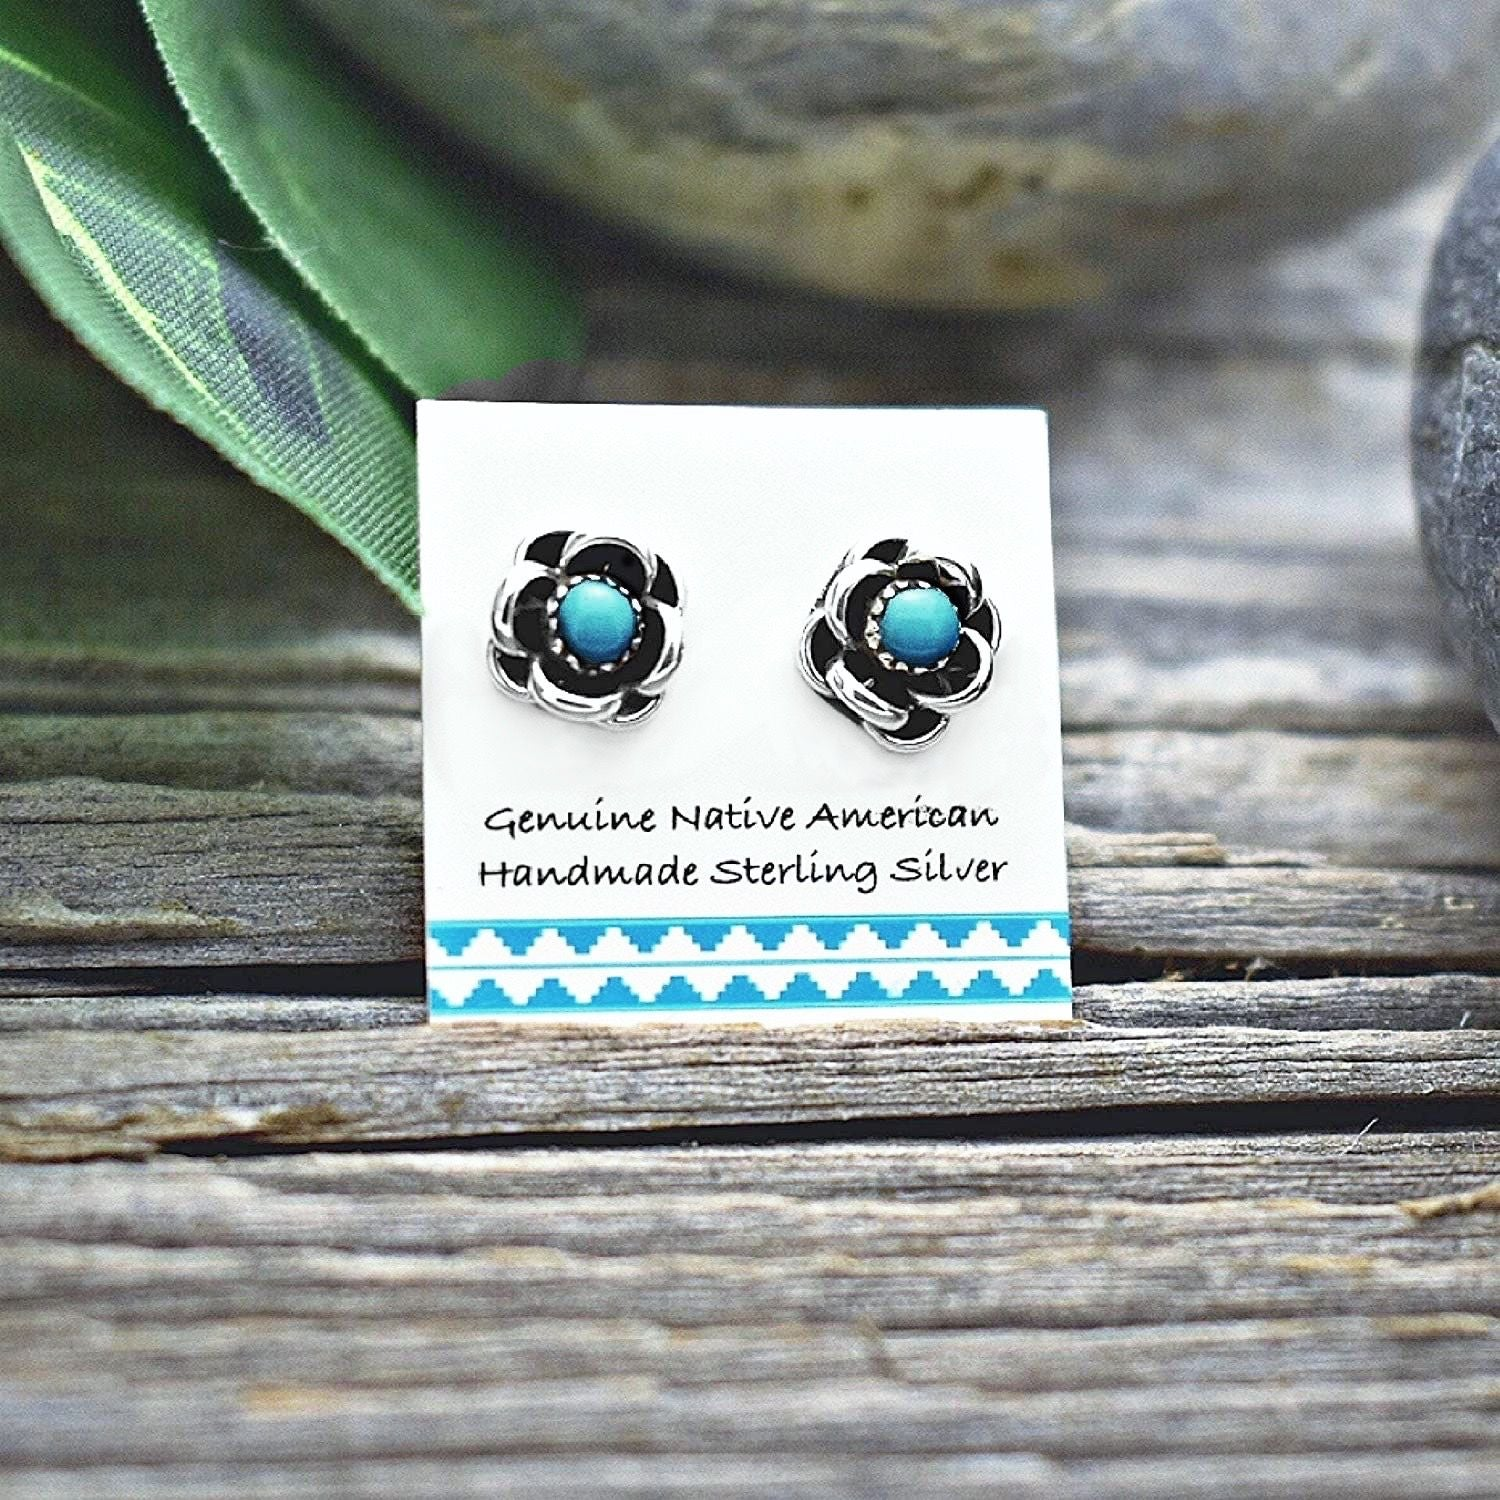 Small Genuine Sleeping Beauty Turquoise Flower Stud Earrings in 925 Sterling Silver, Authentic Native American Handmade, Nickle Free